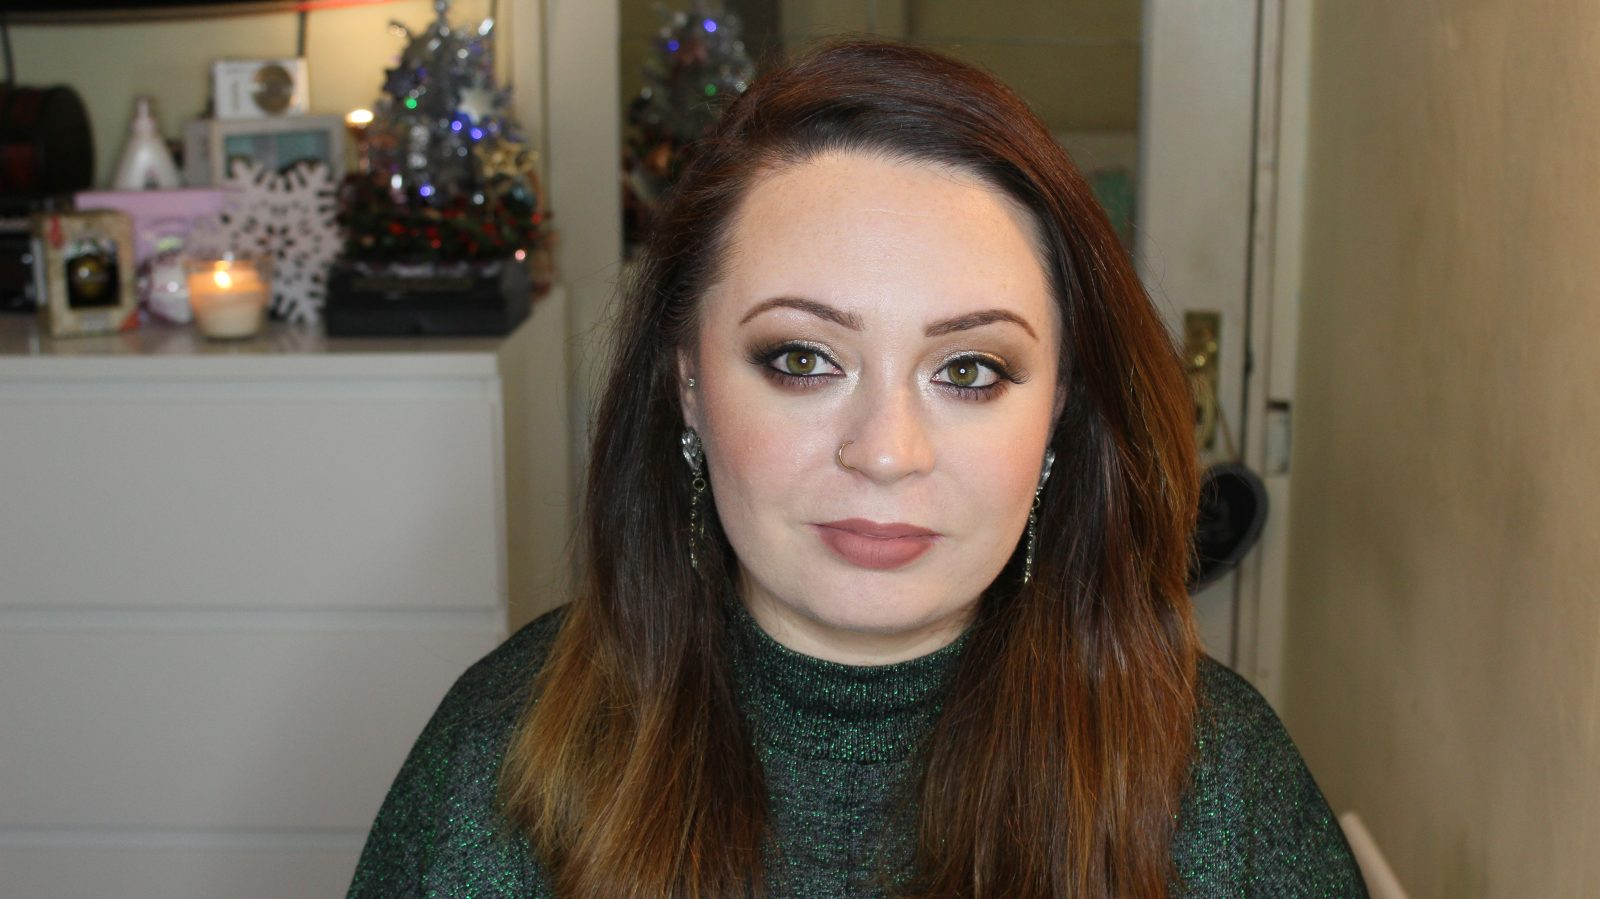 Party Makeup Affordable Products - Irish Beauty Blog Beautynook